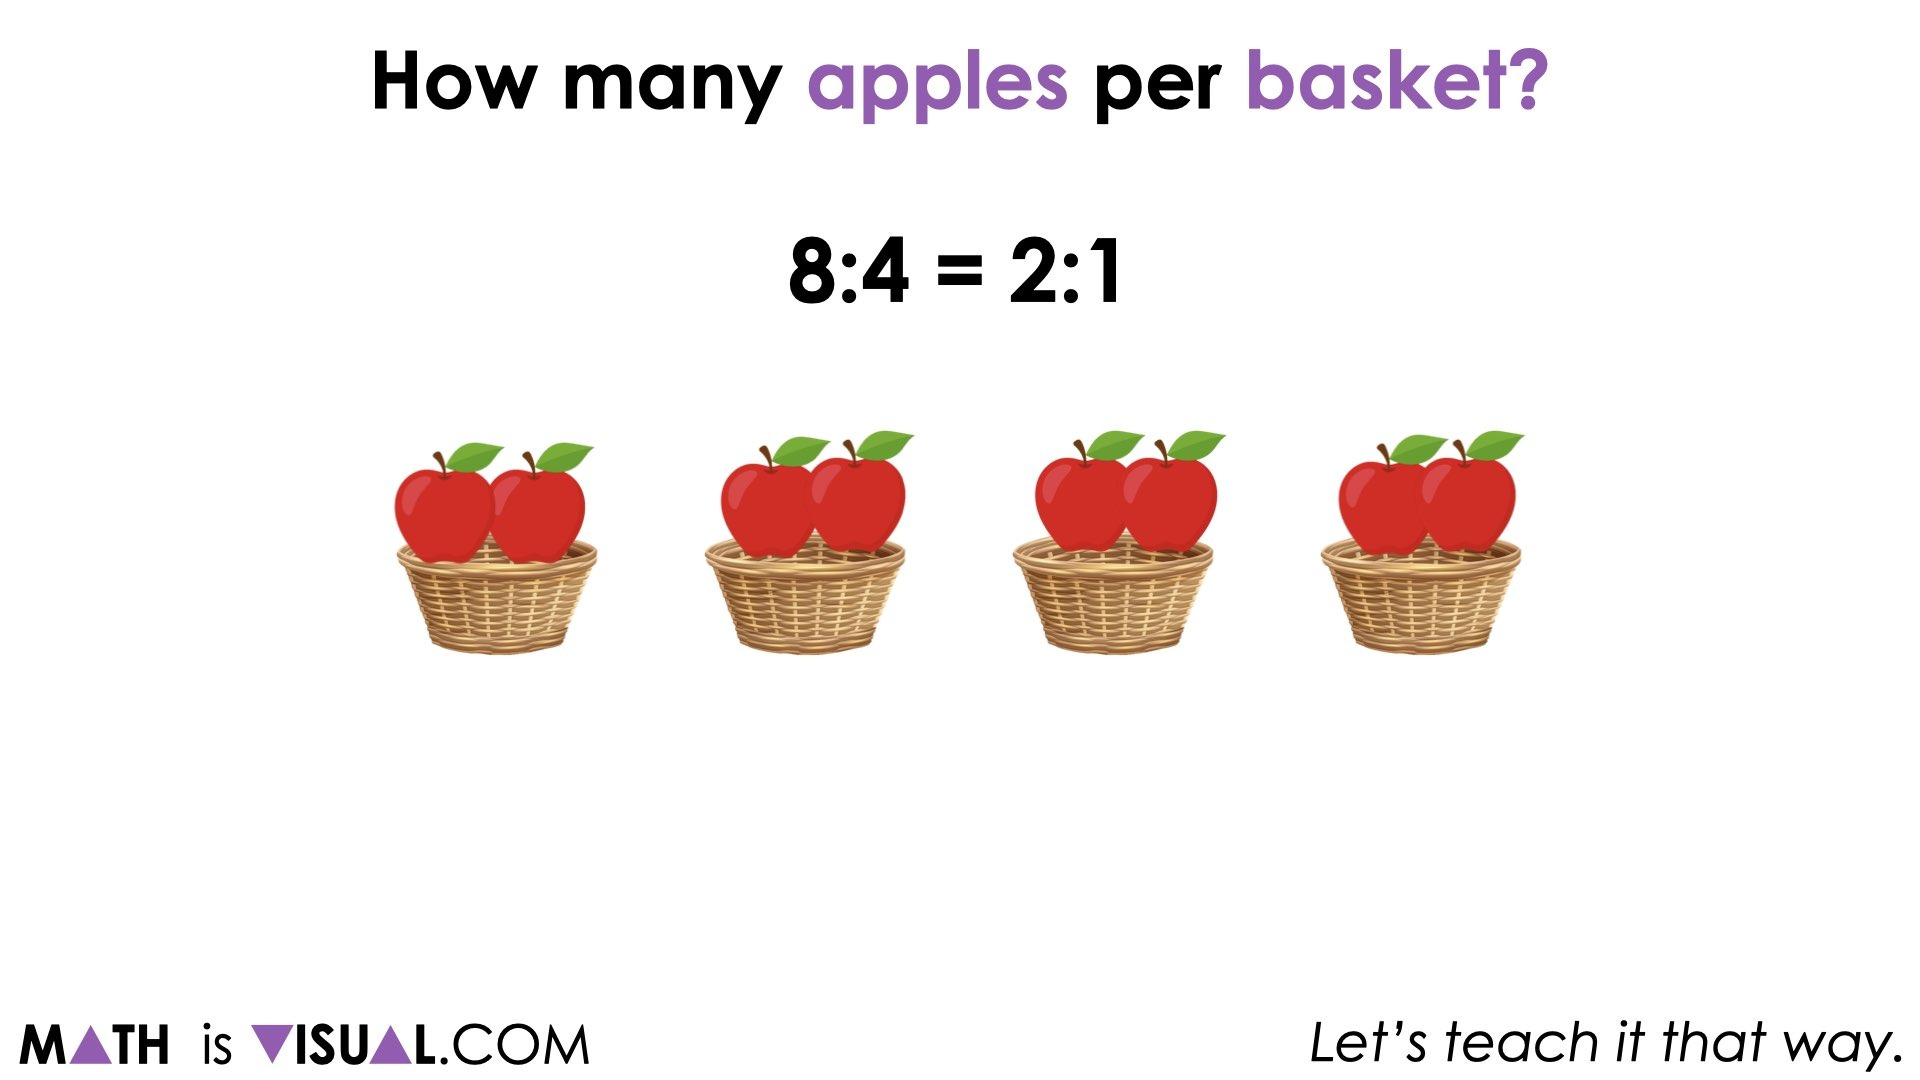 Planting Flowers [Day 2] - 03 - Dividing Ratios to Reveal a Rate 2 apples to 1 baskets